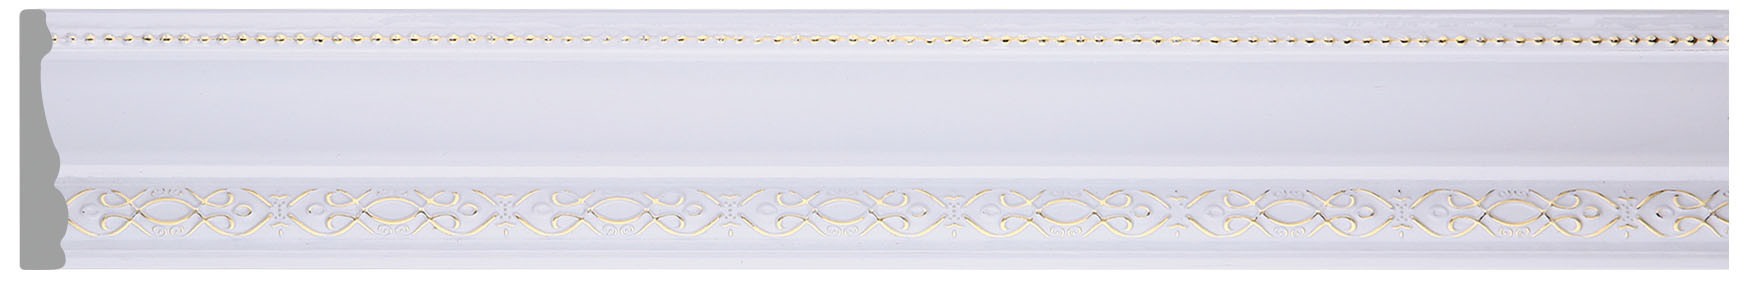 PS Foam Cornice Moulding with High Quality and Modern Design